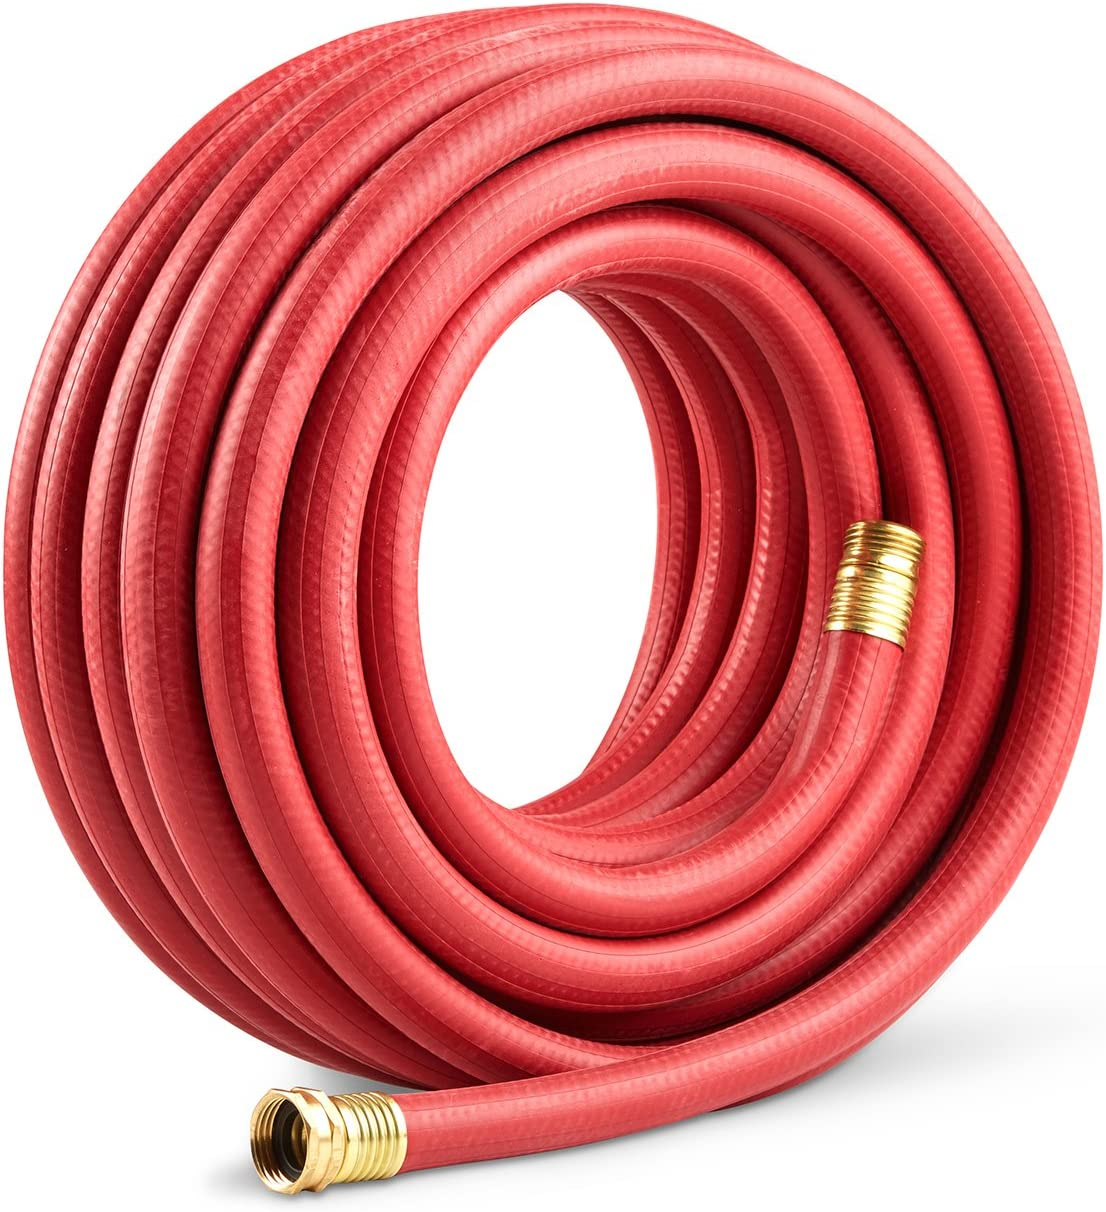 Gilmour 18 Series Reinforced Rubber Hose 5/8 Inch x 75 Feet Red 18-58075 (Discontinued by Manufacturer)